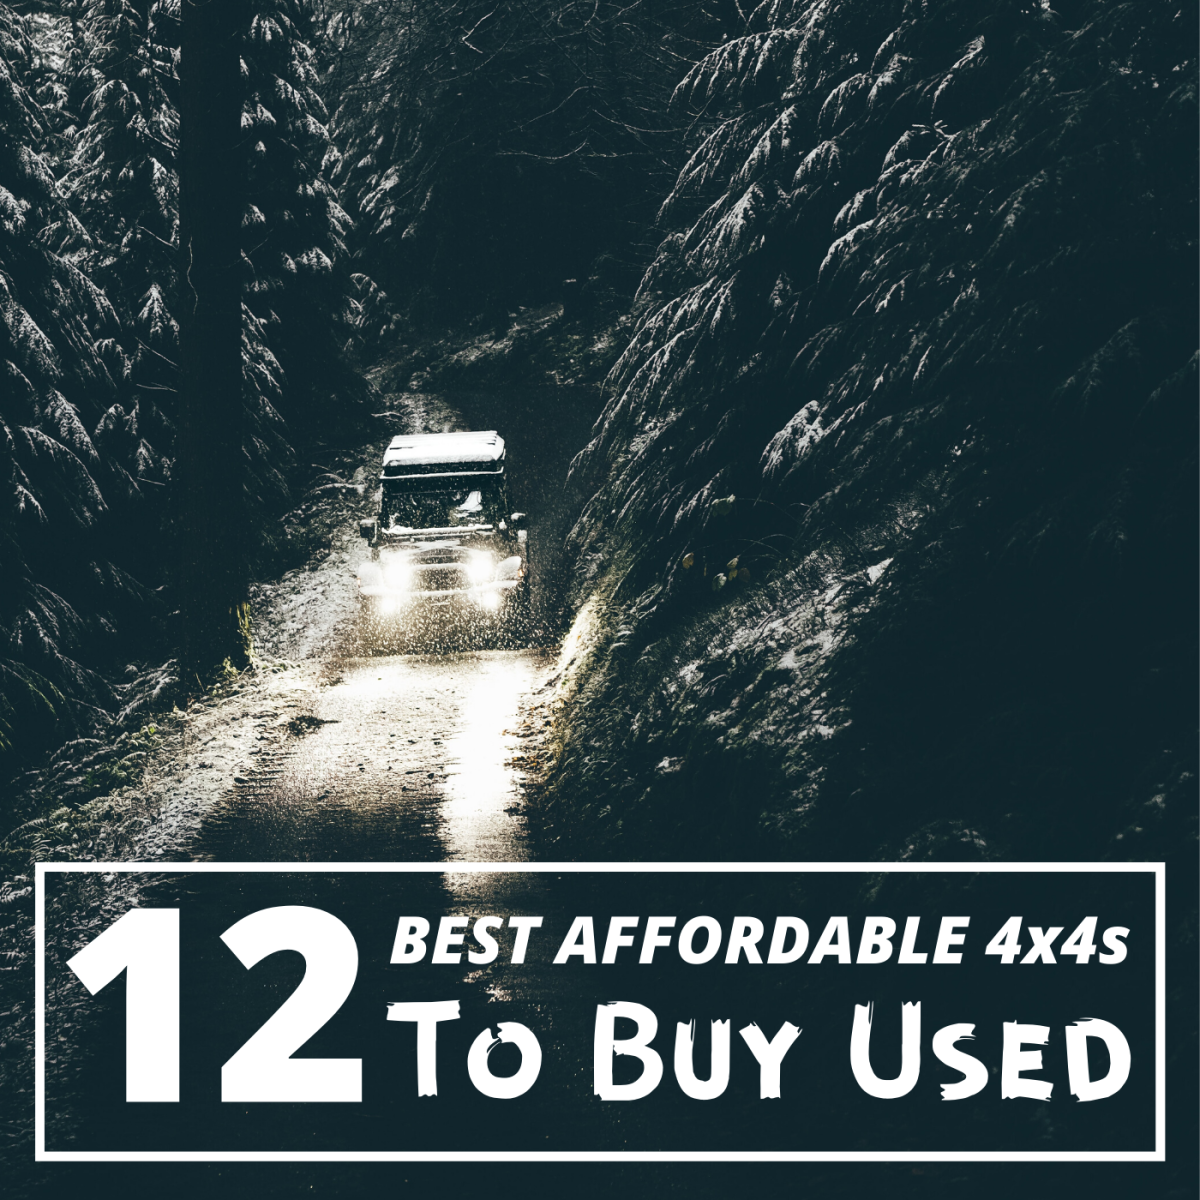 If you're looking for an affordable used 4x4, consider these 12 vehicles. Each has something different to offer.